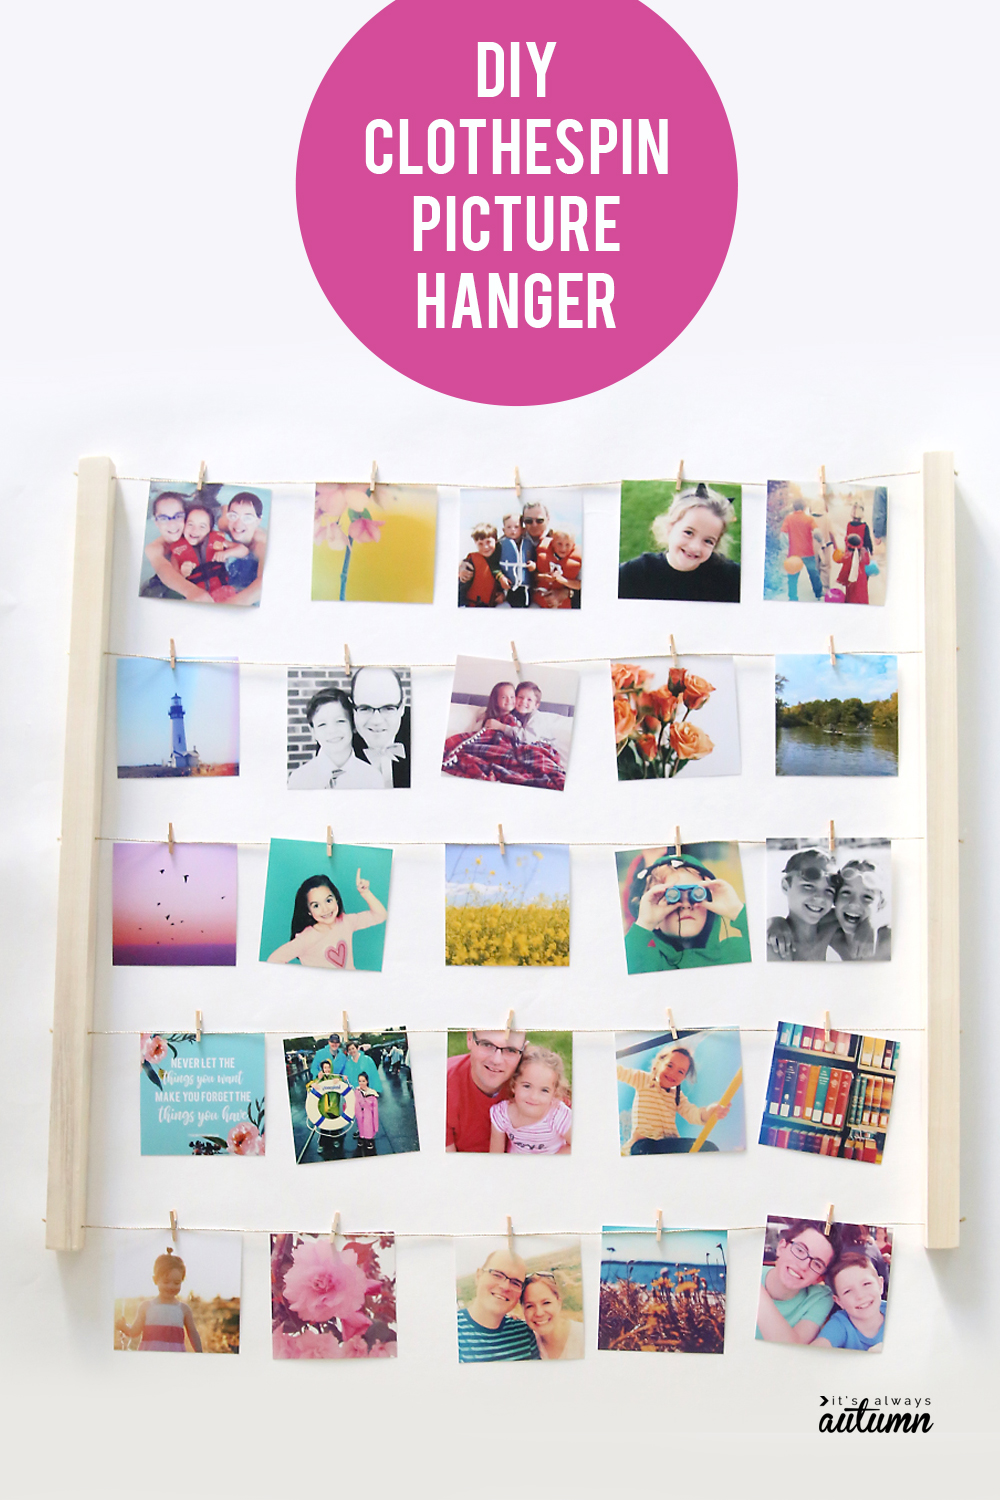 Learn how to make this cute DIY clothespin picture hanger out of some twine and a couple of square dowels - it's super easy! Fun photo display for your home decor.